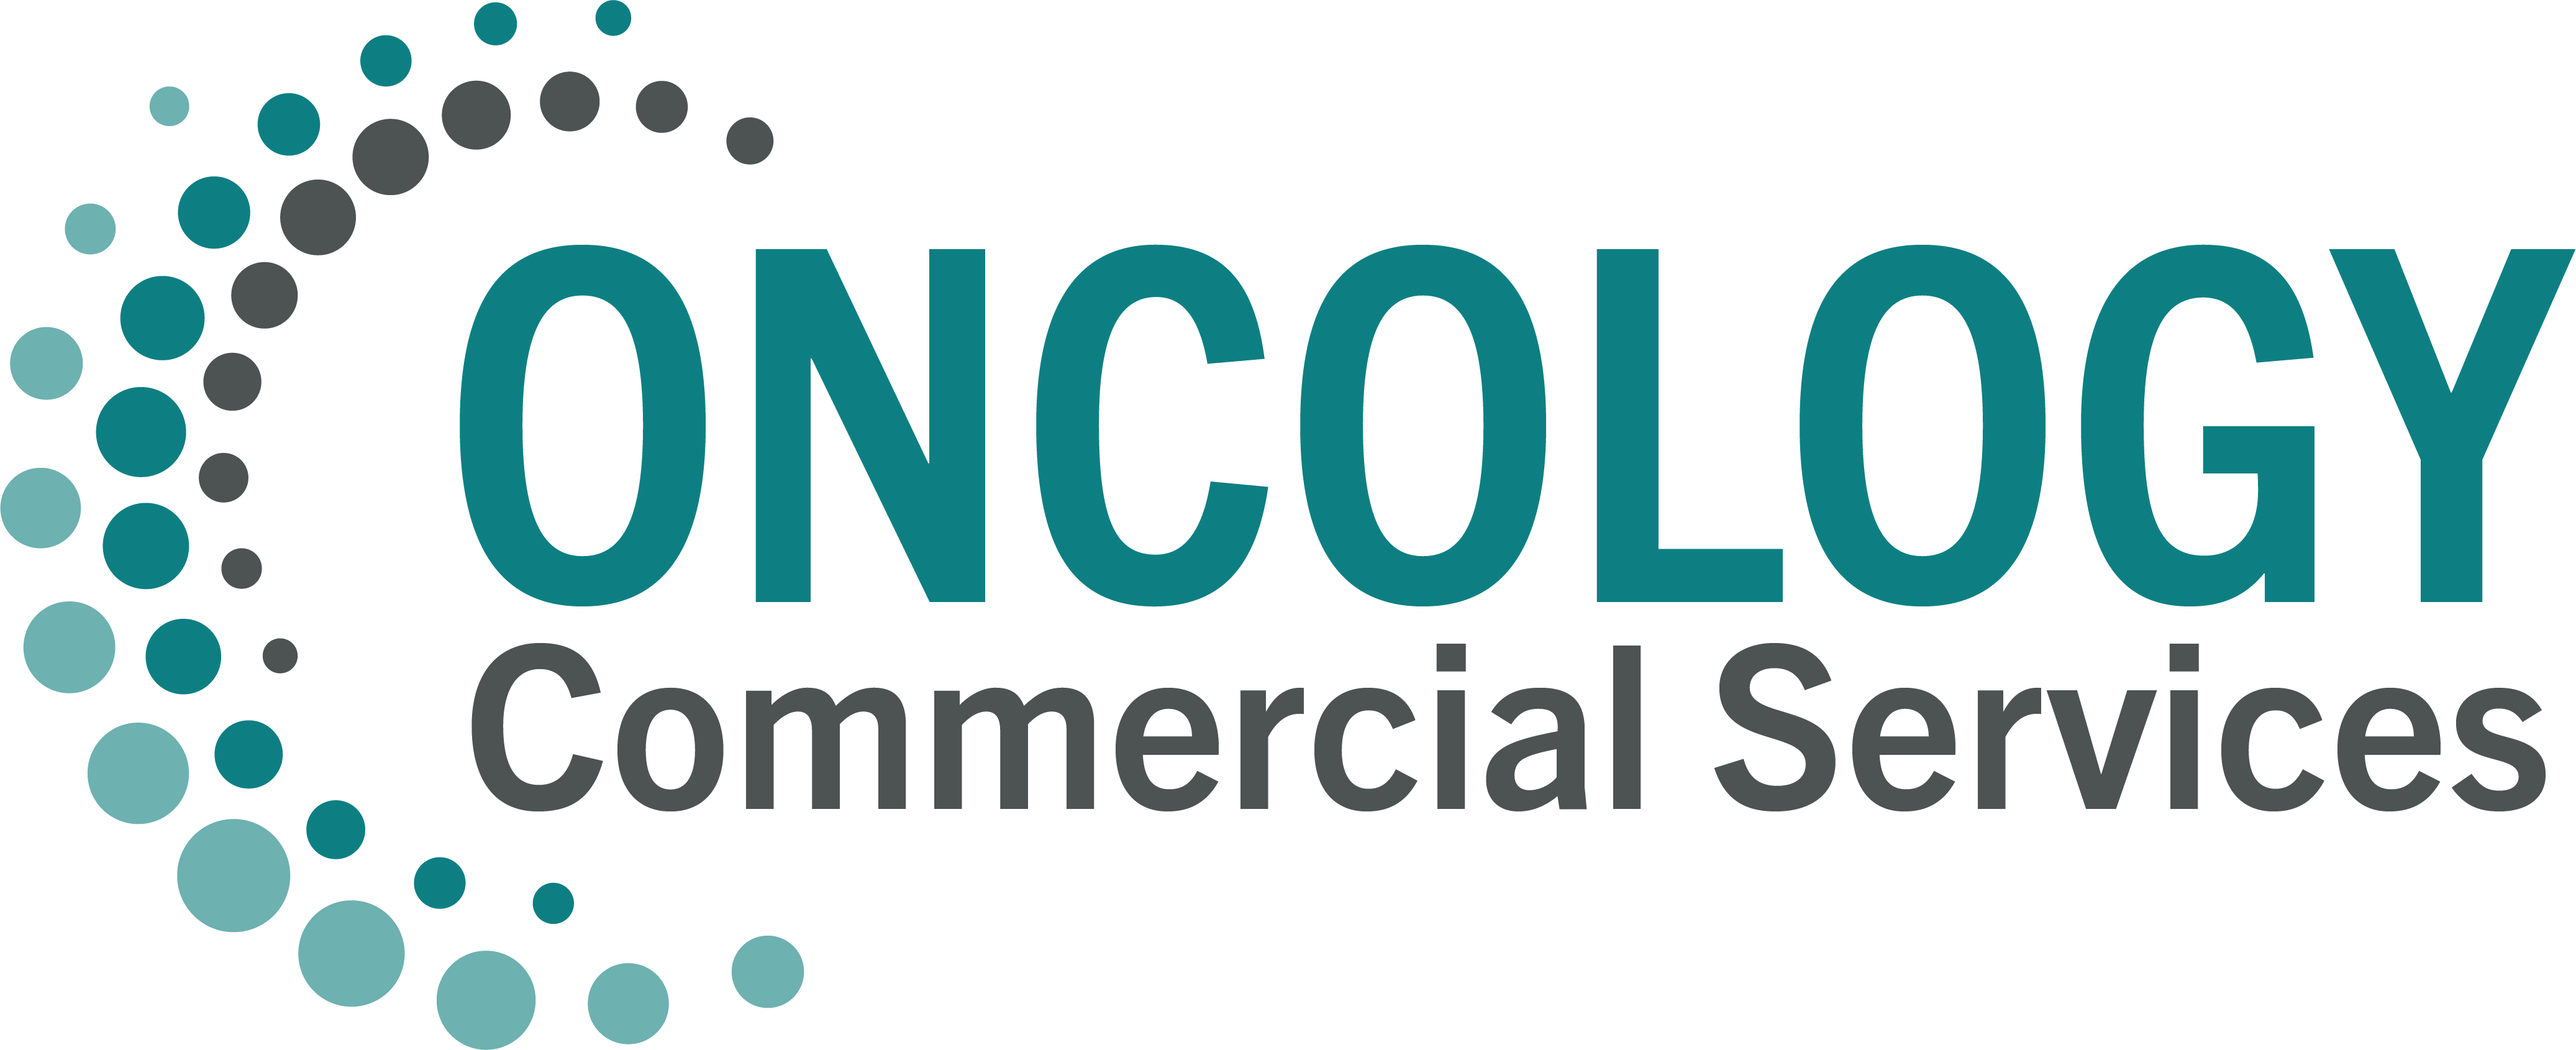 Oncology Commercial Services